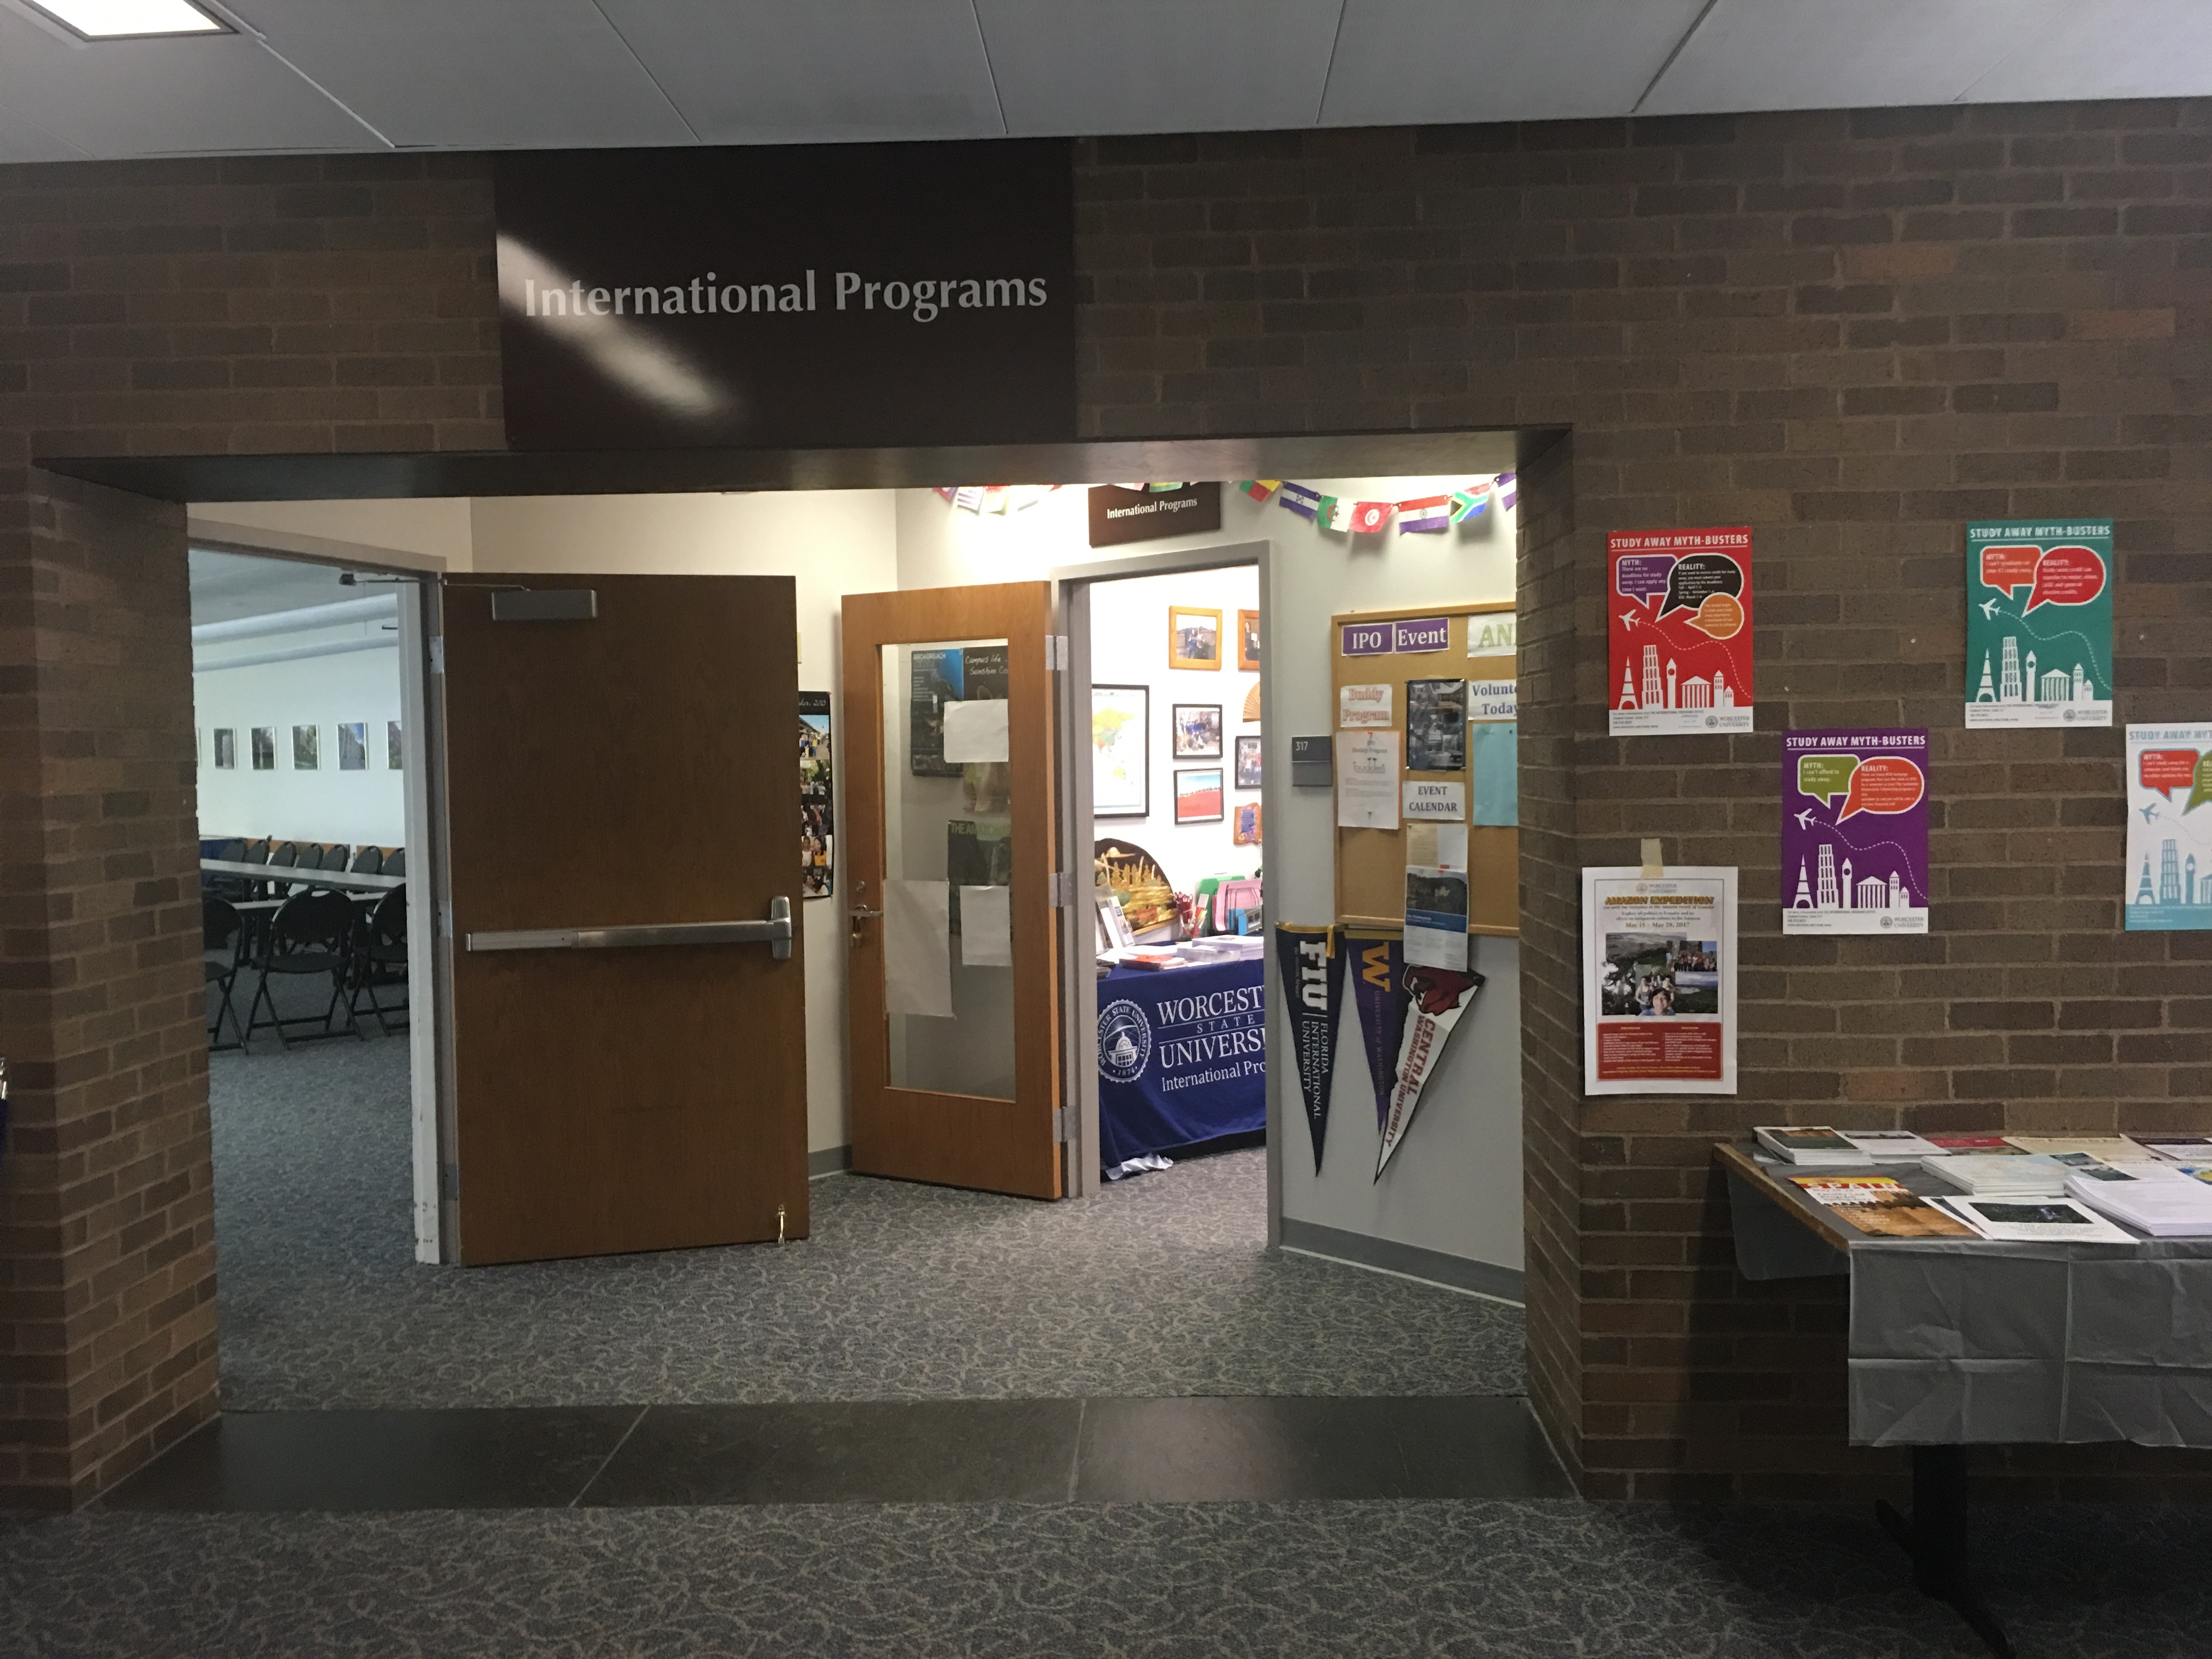 The International Programs office at WSU.